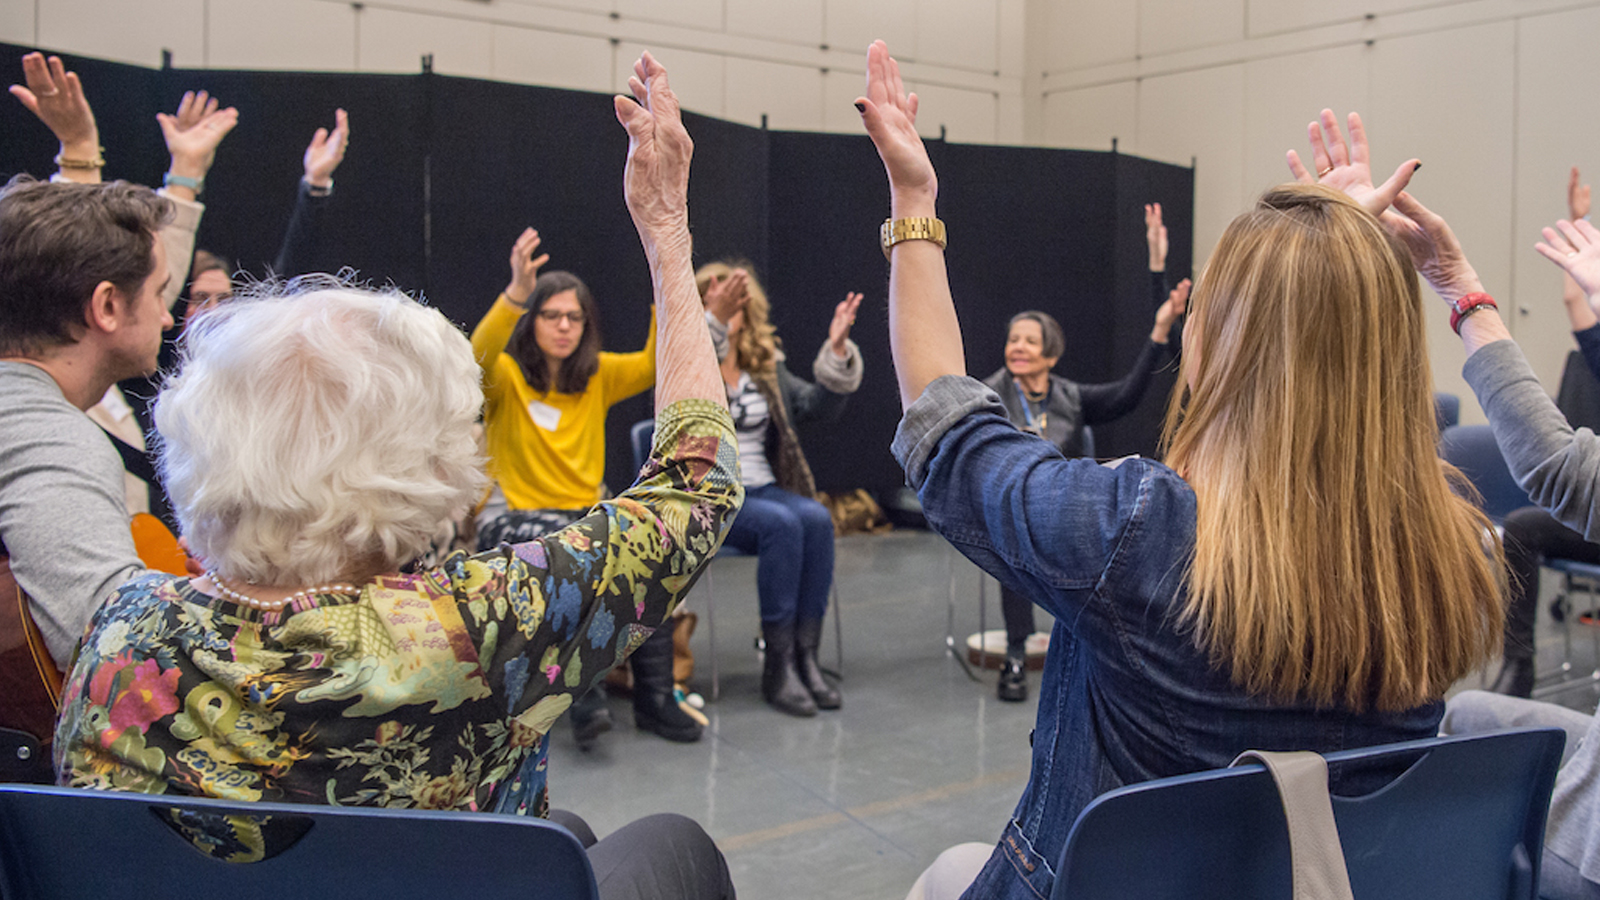 A dozen people, most older adults, sitting in a circle raise their arms in the air. One person holds a guitar.